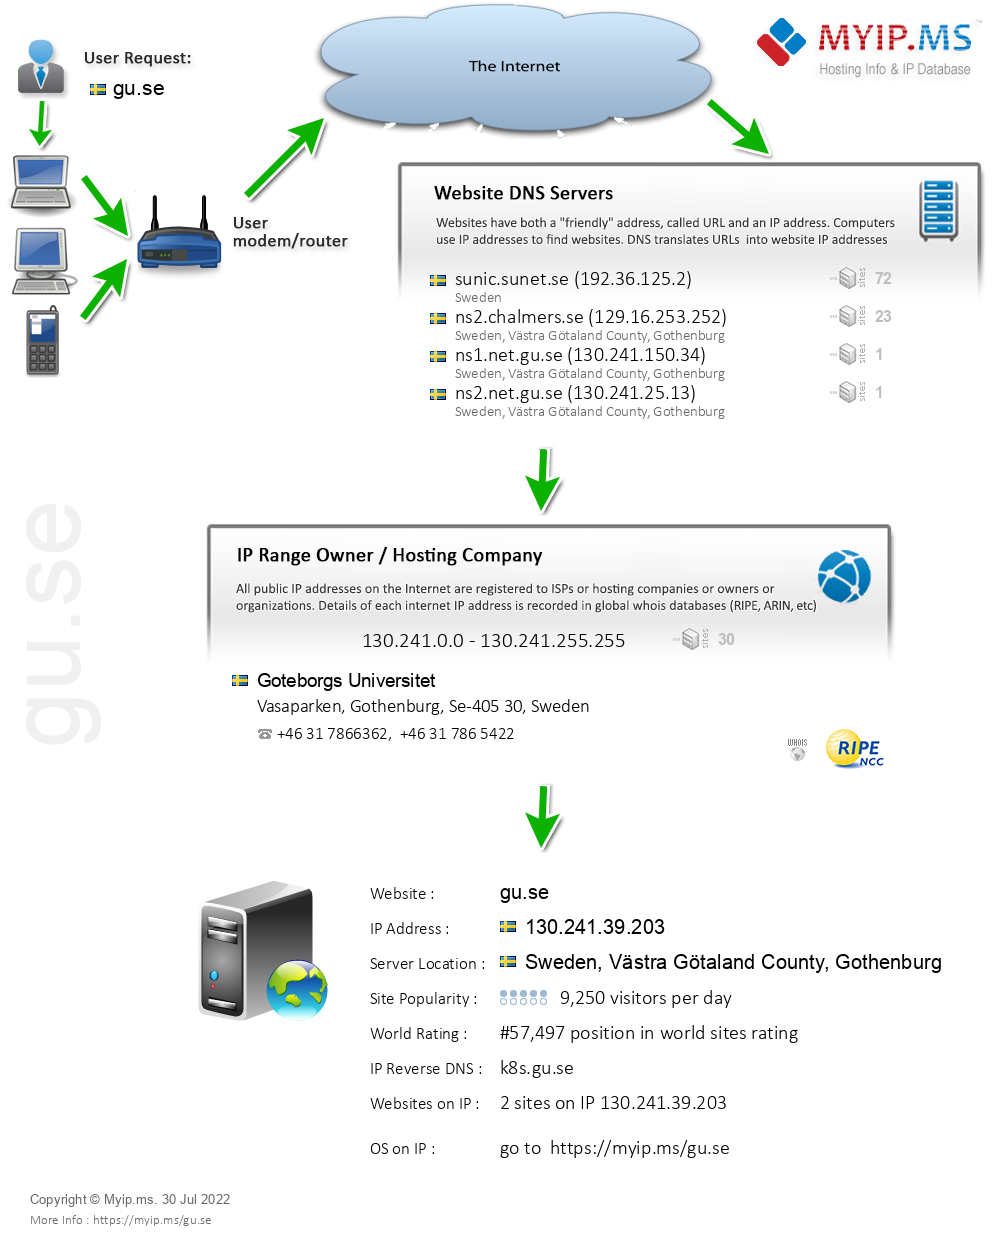 Gu.se - Website Hosting Visual IP Diagram